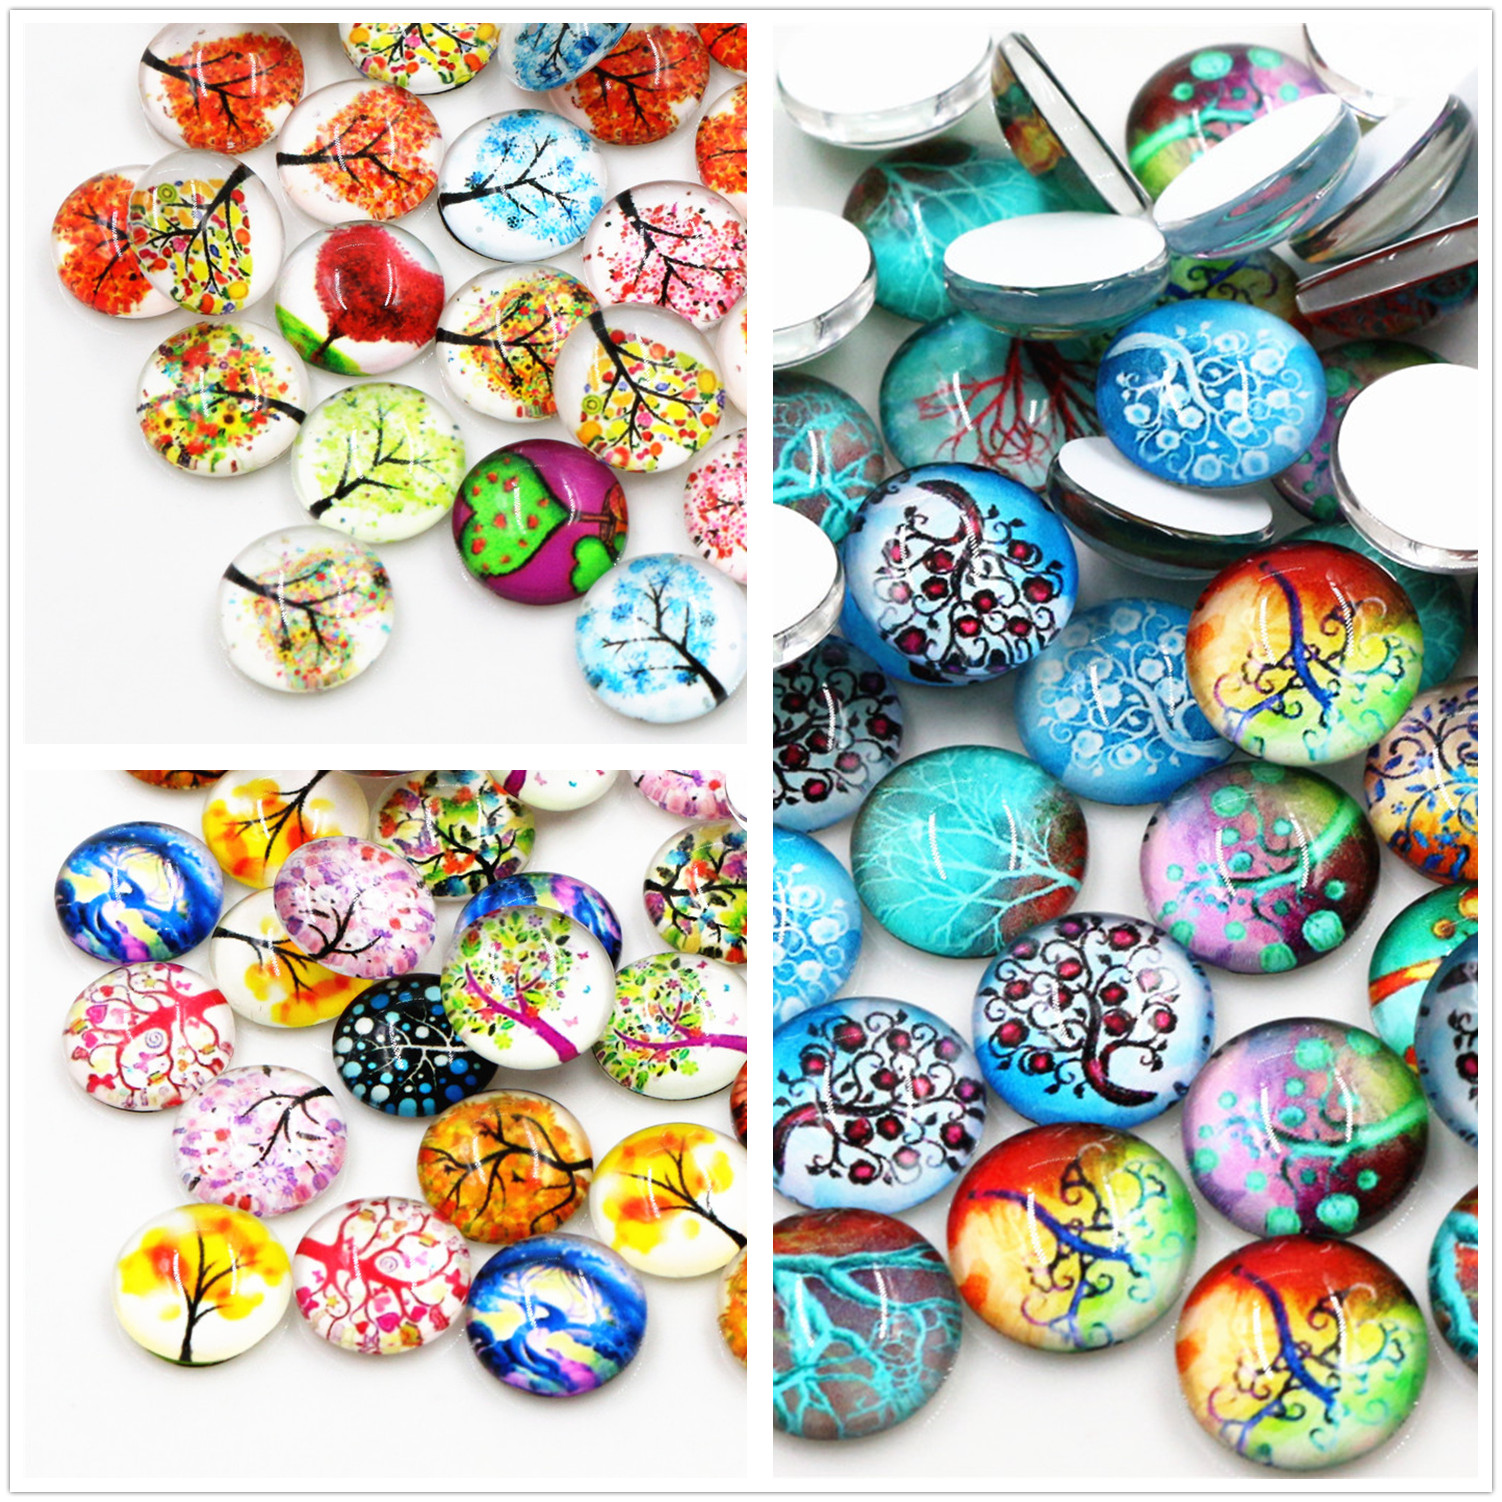 50pcs/Lot 12mm Colorful Fashion New Photo Glass Cabochons Mixed Color Cabochons For Bracelet Earrings Necklace Bases Settings